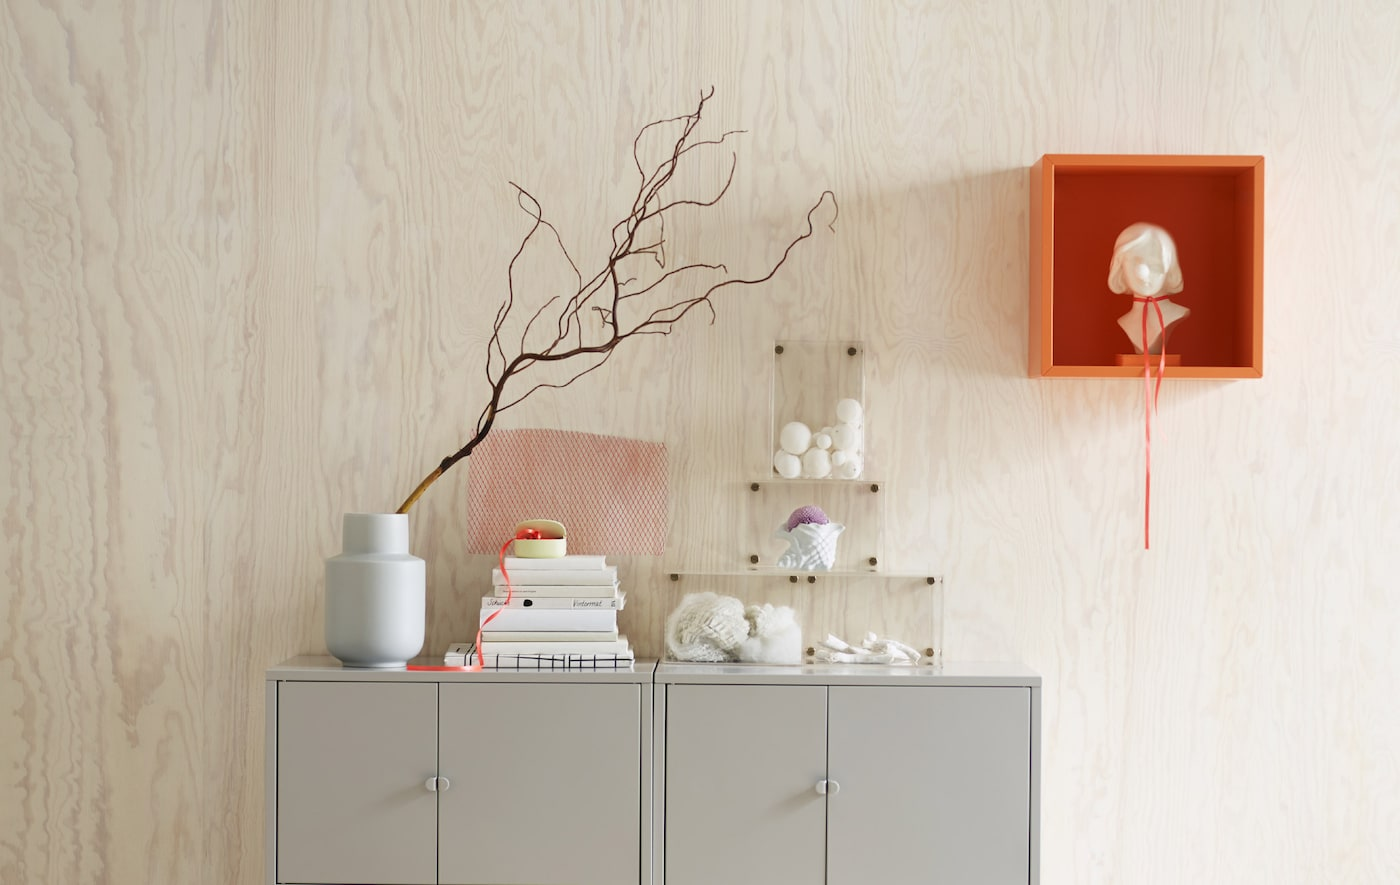 IKEA can help with interior design ideas like a Scandinavian-inspired storage solution with gray metal closed cabinets, found objects on display in plastic boxes and a cubic open cabinet in eye-catching orange.